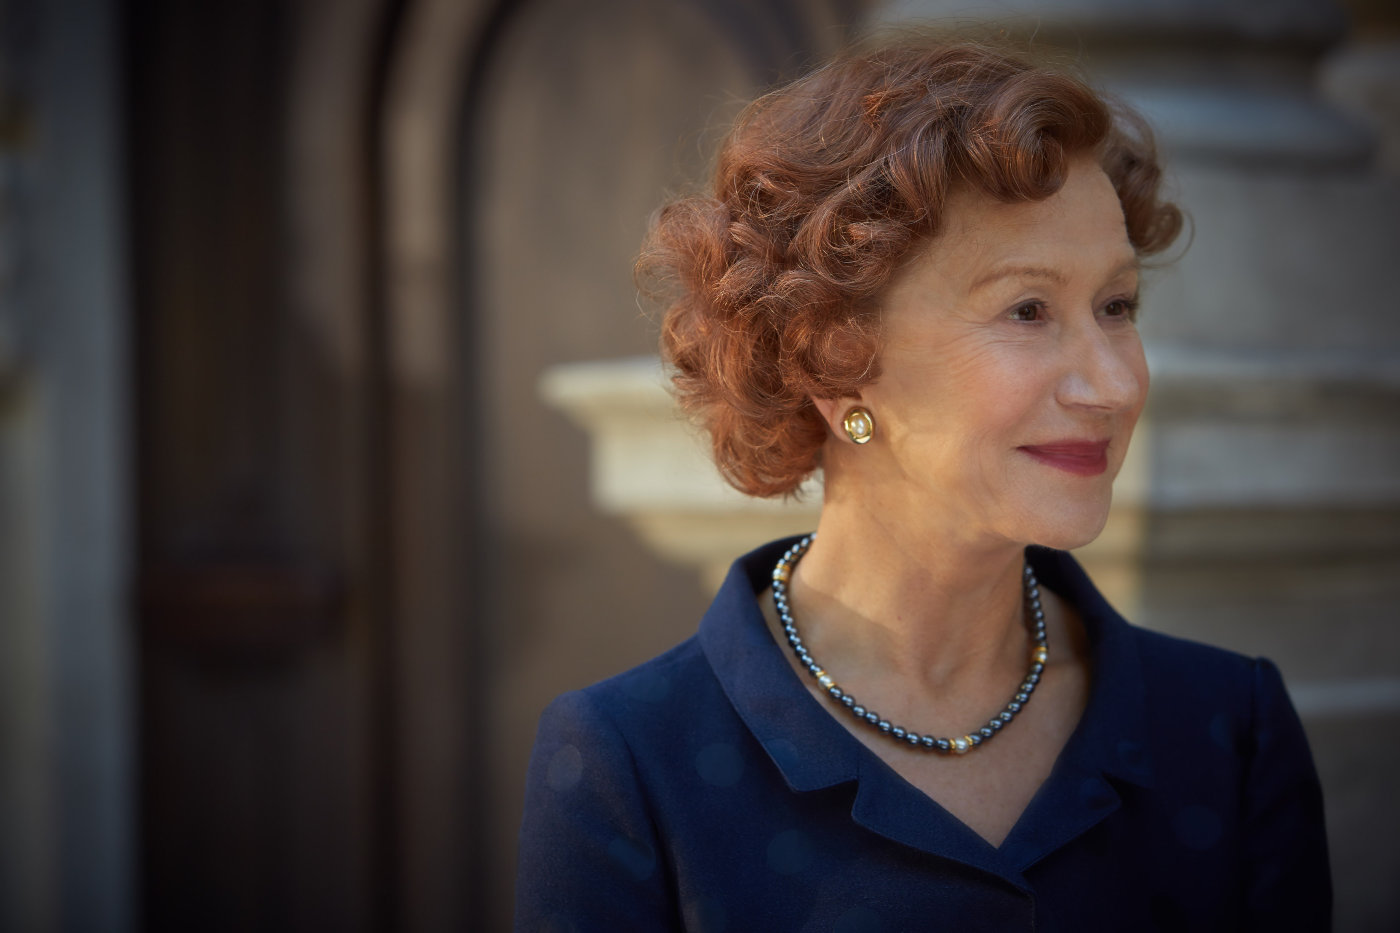 Summary: Woman in Gold is entertaining but would be taken more